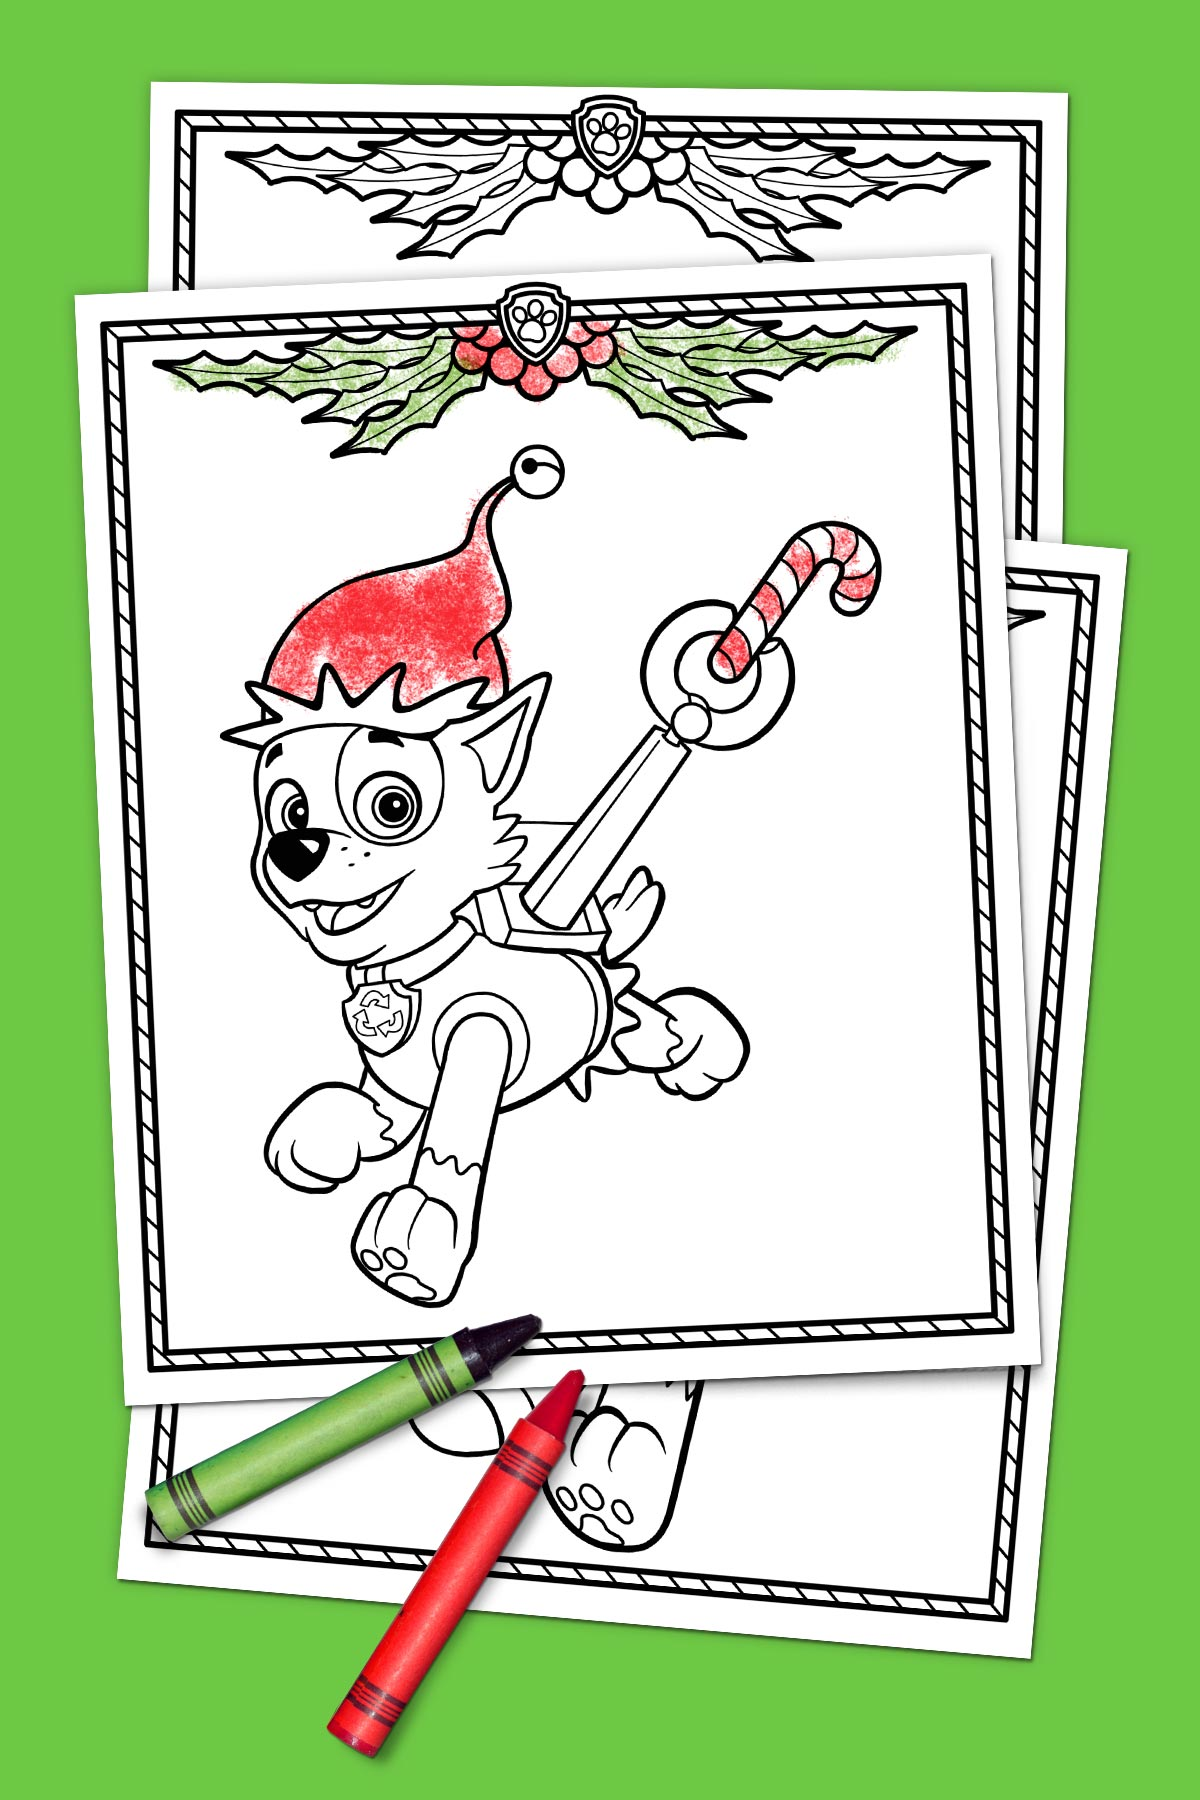 PAW Patrol Holiday Coloring